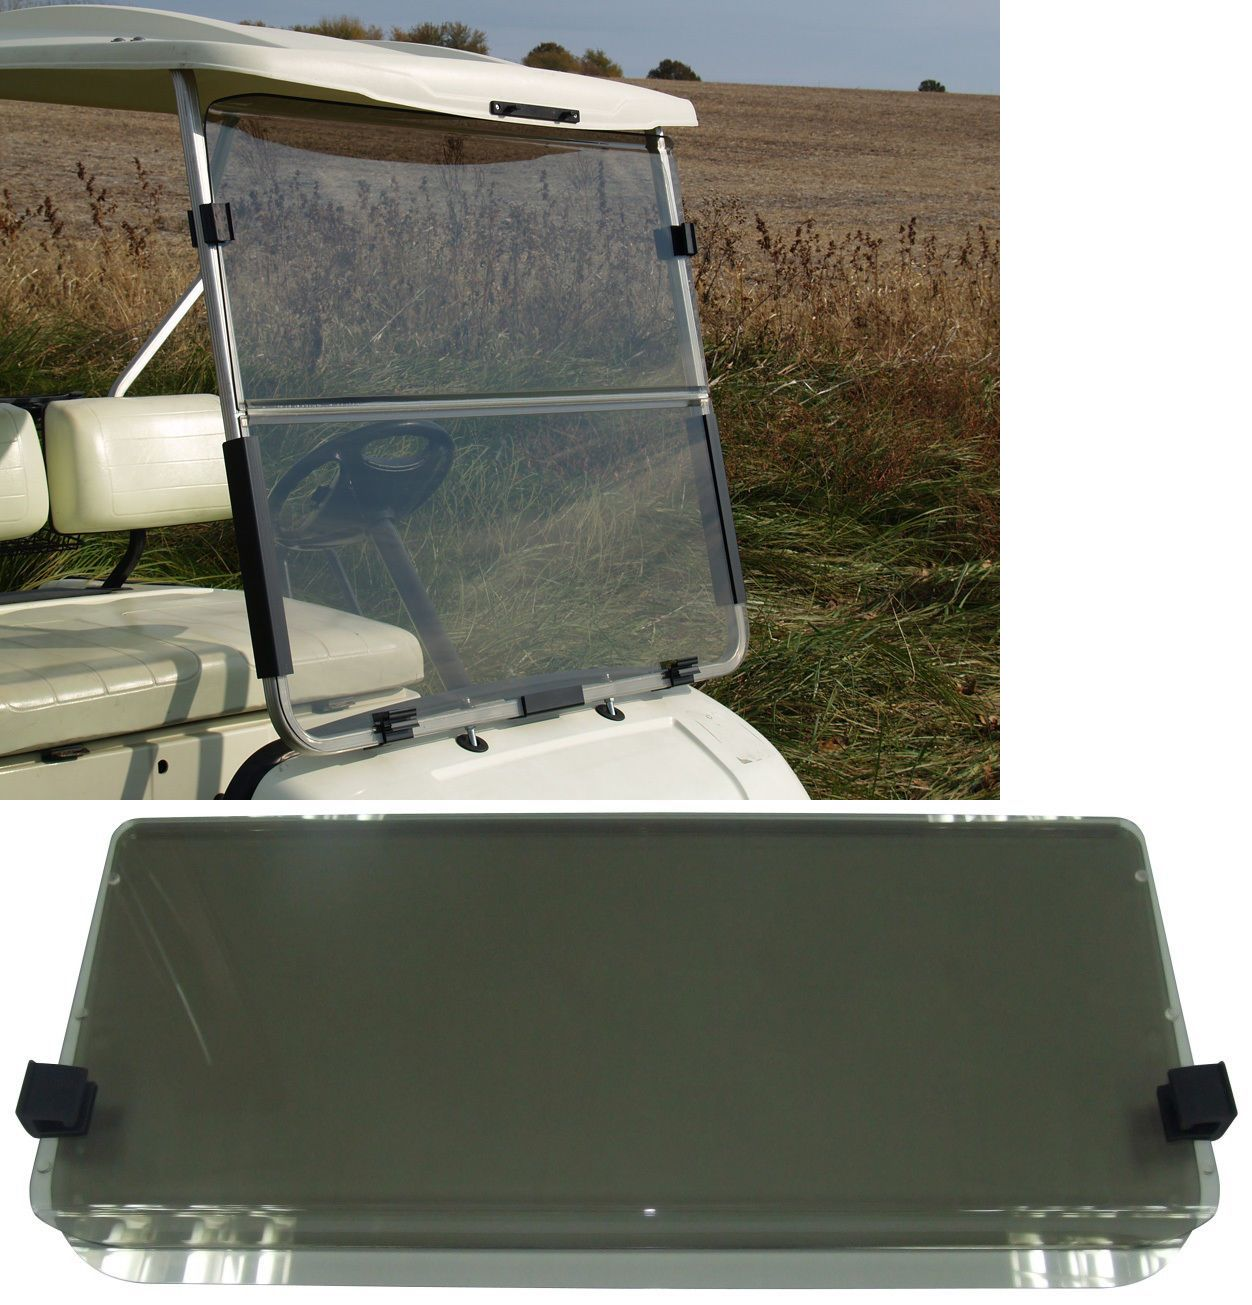 Other Golf Accessories 1514: Recpro™ Yamaha G22 Tinted Golf ... on vehicle windshield, bus windshield, go cart windshield, golf club windshield, car windshield, atv windshield, utv windshield,